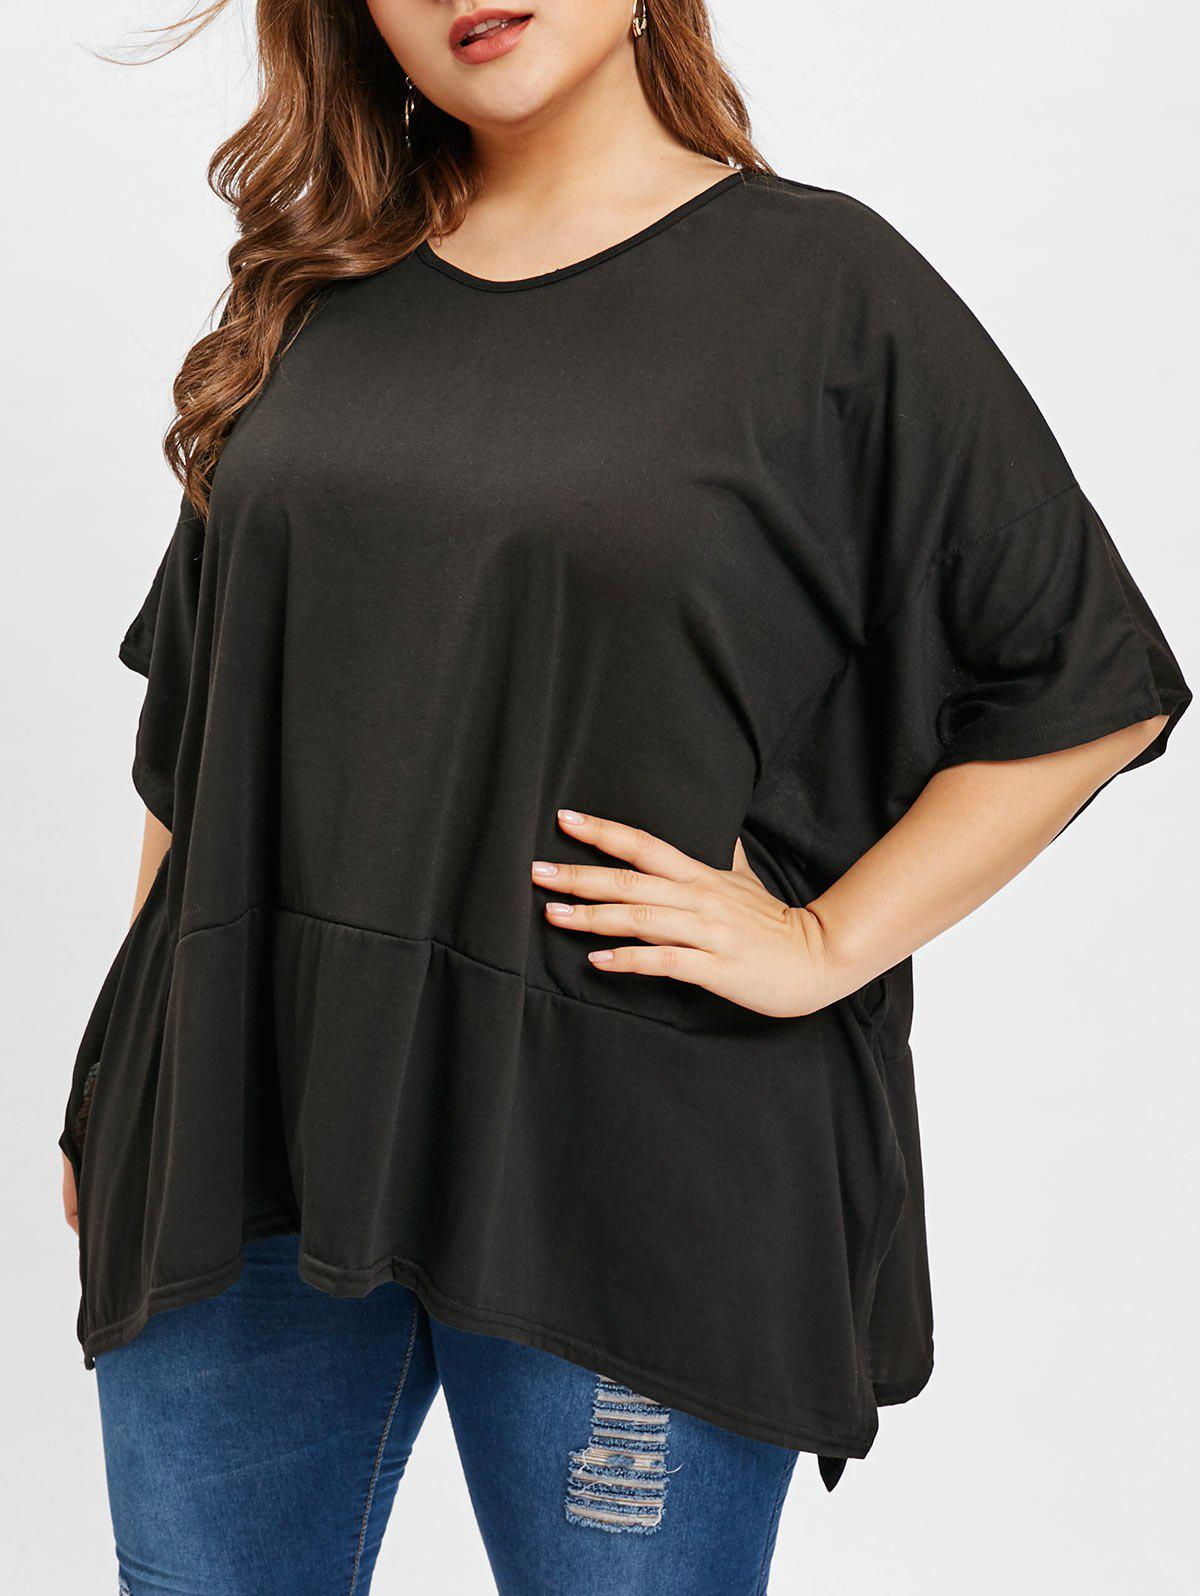 69b9eb37c6d 2019 Plus Size Batwing Sleeve V Neck T-shirt